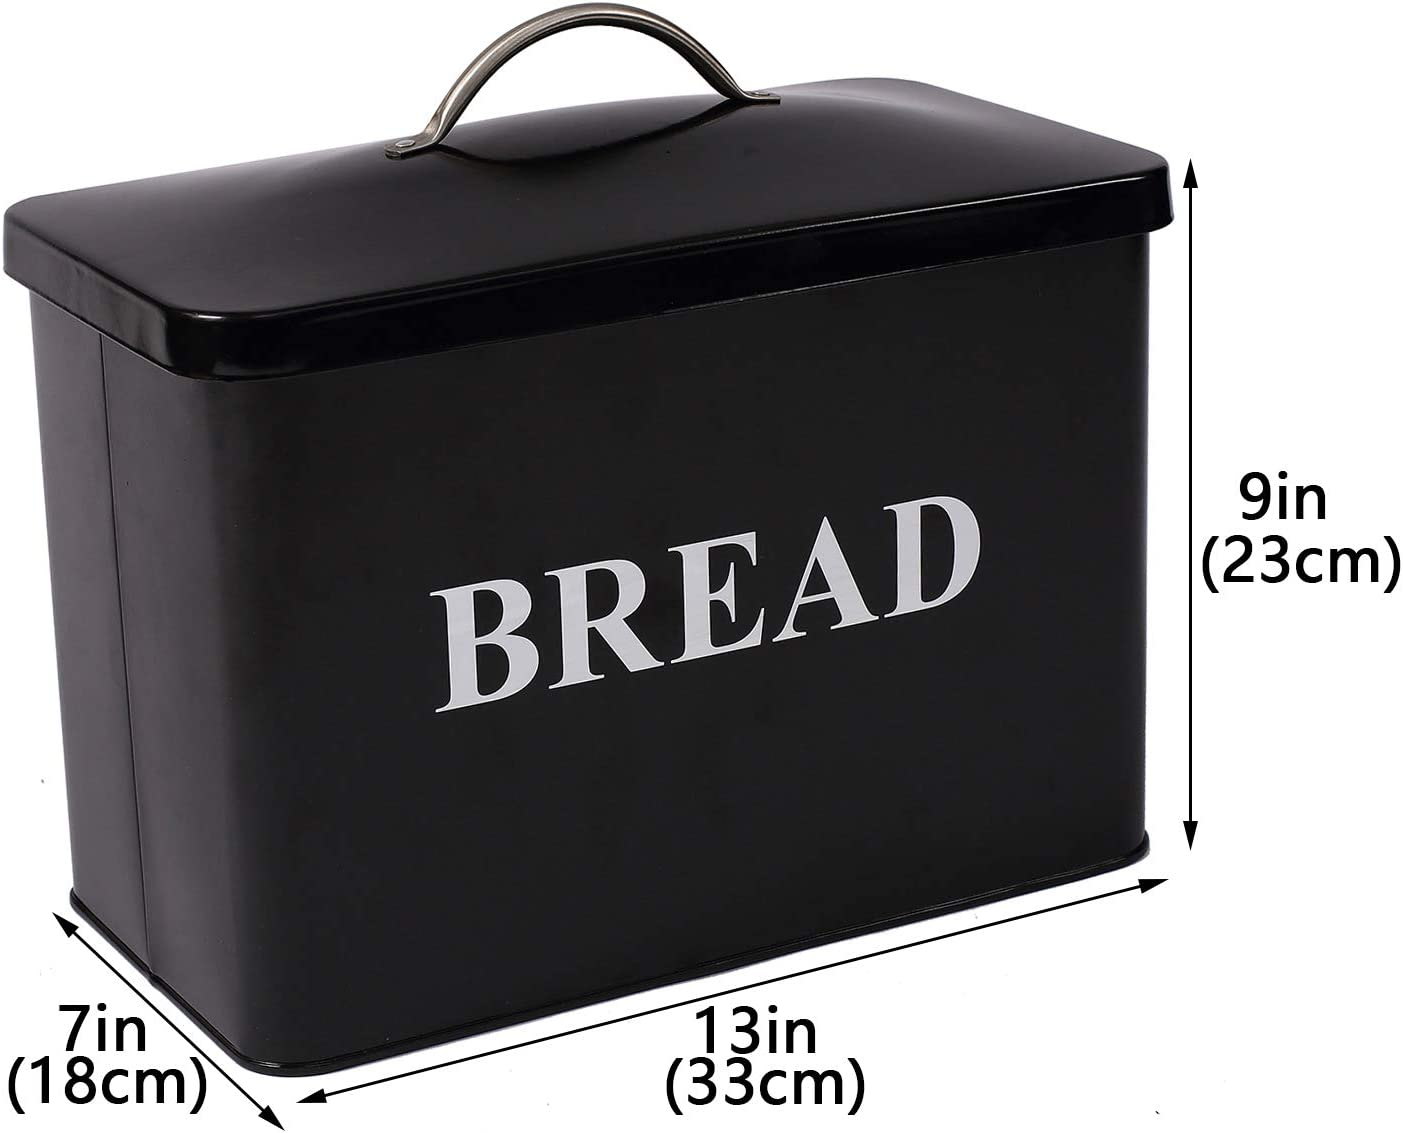 W Extra Large Space Saving Vertical Bread Box Cream Extra Large Breadbox Bread Holder x 9 x 7 L 13 - Black with BREAD Lettering H Holds 2 Loaves